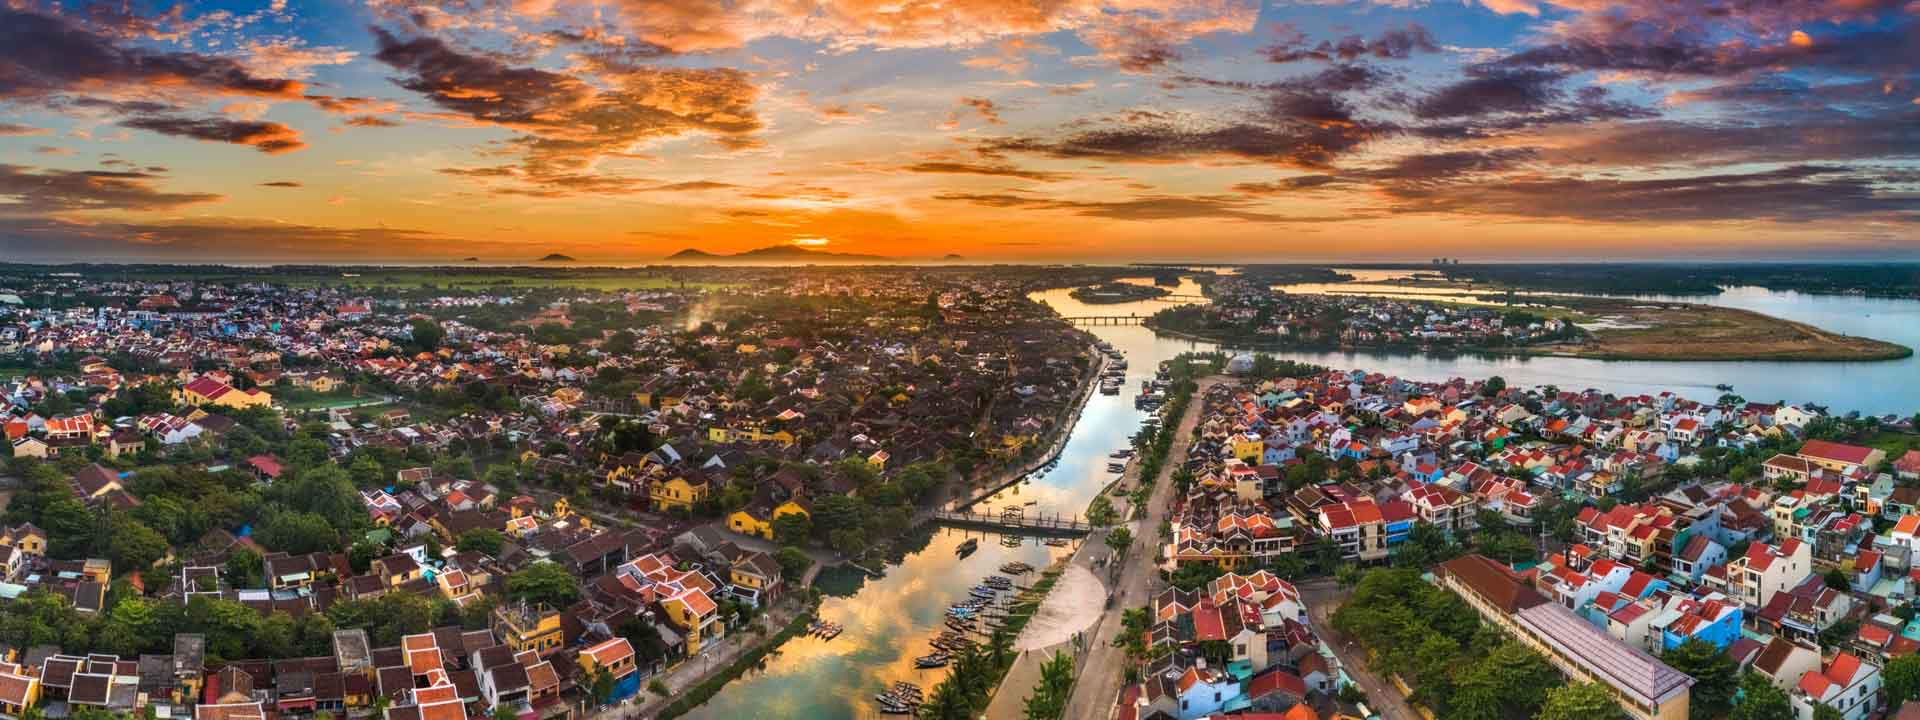 3 weeks Laos Cambodia Vietnam tour through culture lens